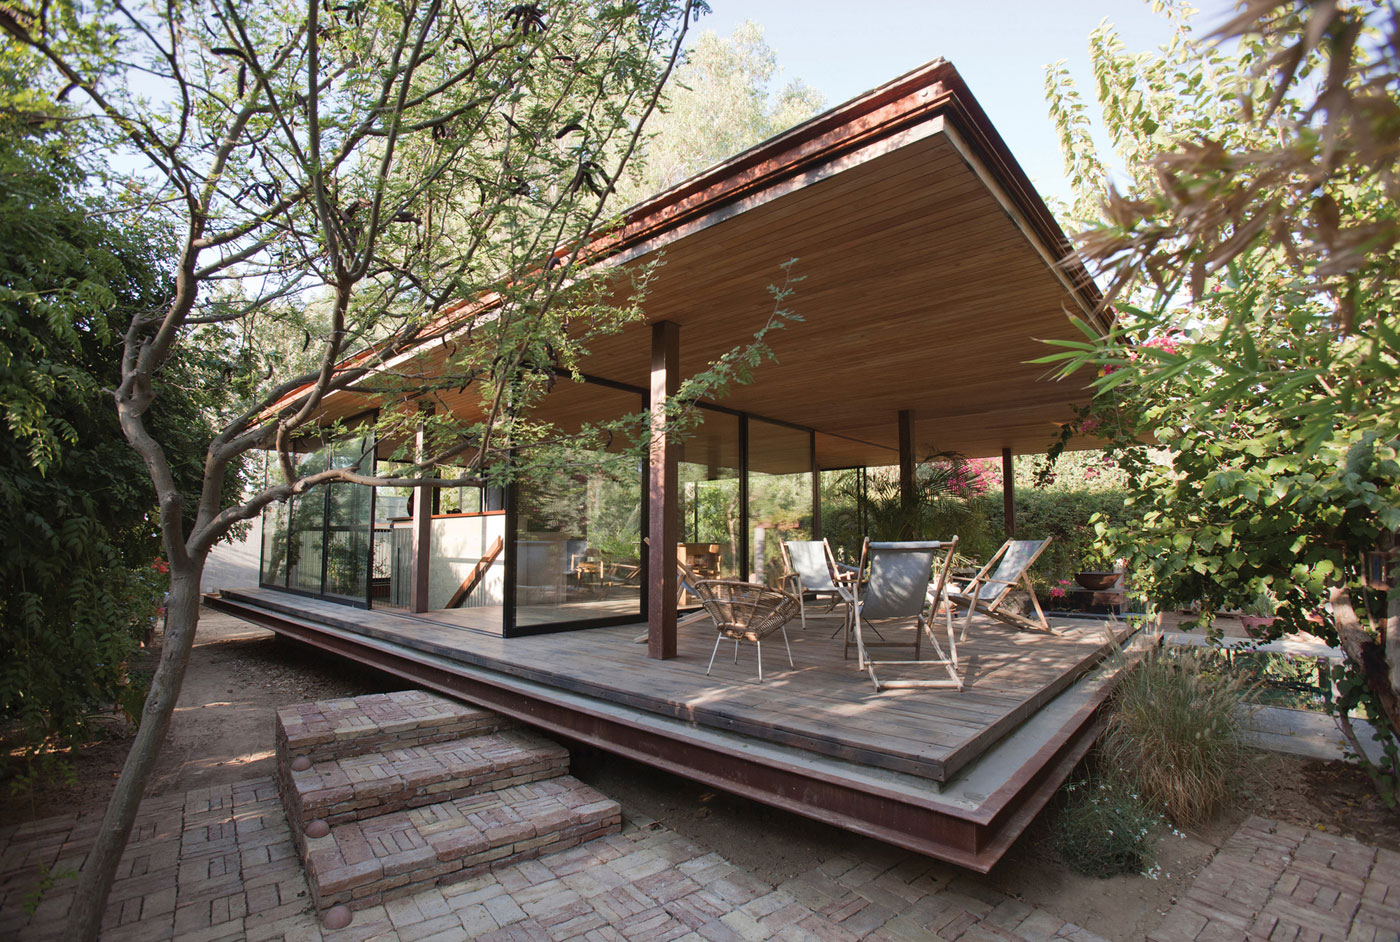 Pavilion at Architect's Residence in Nicosia by Kythreotis Architects-01